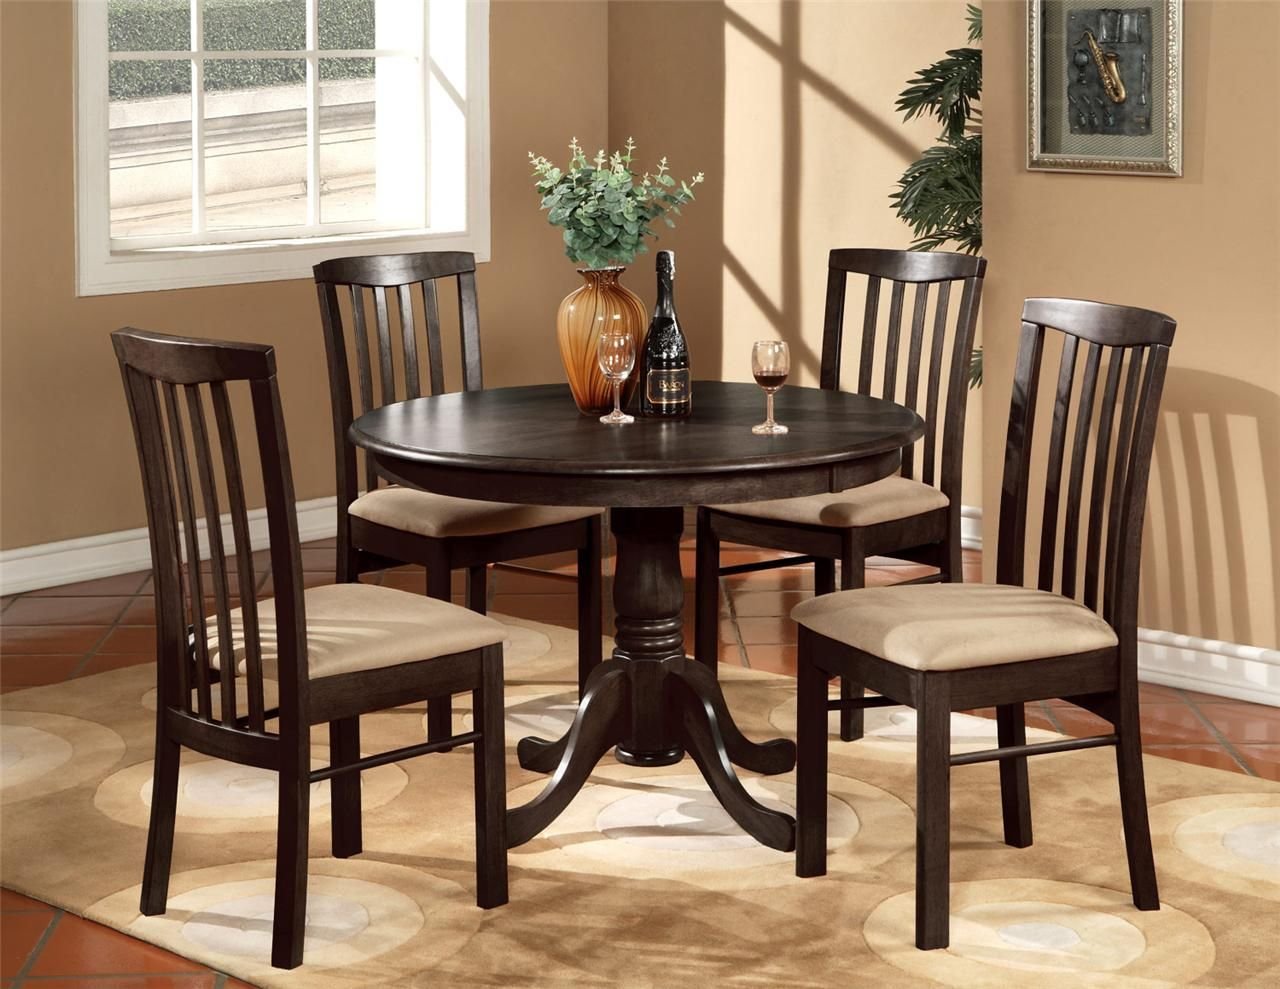 kitchen round tables and chairs kitchen decorating ideas on a